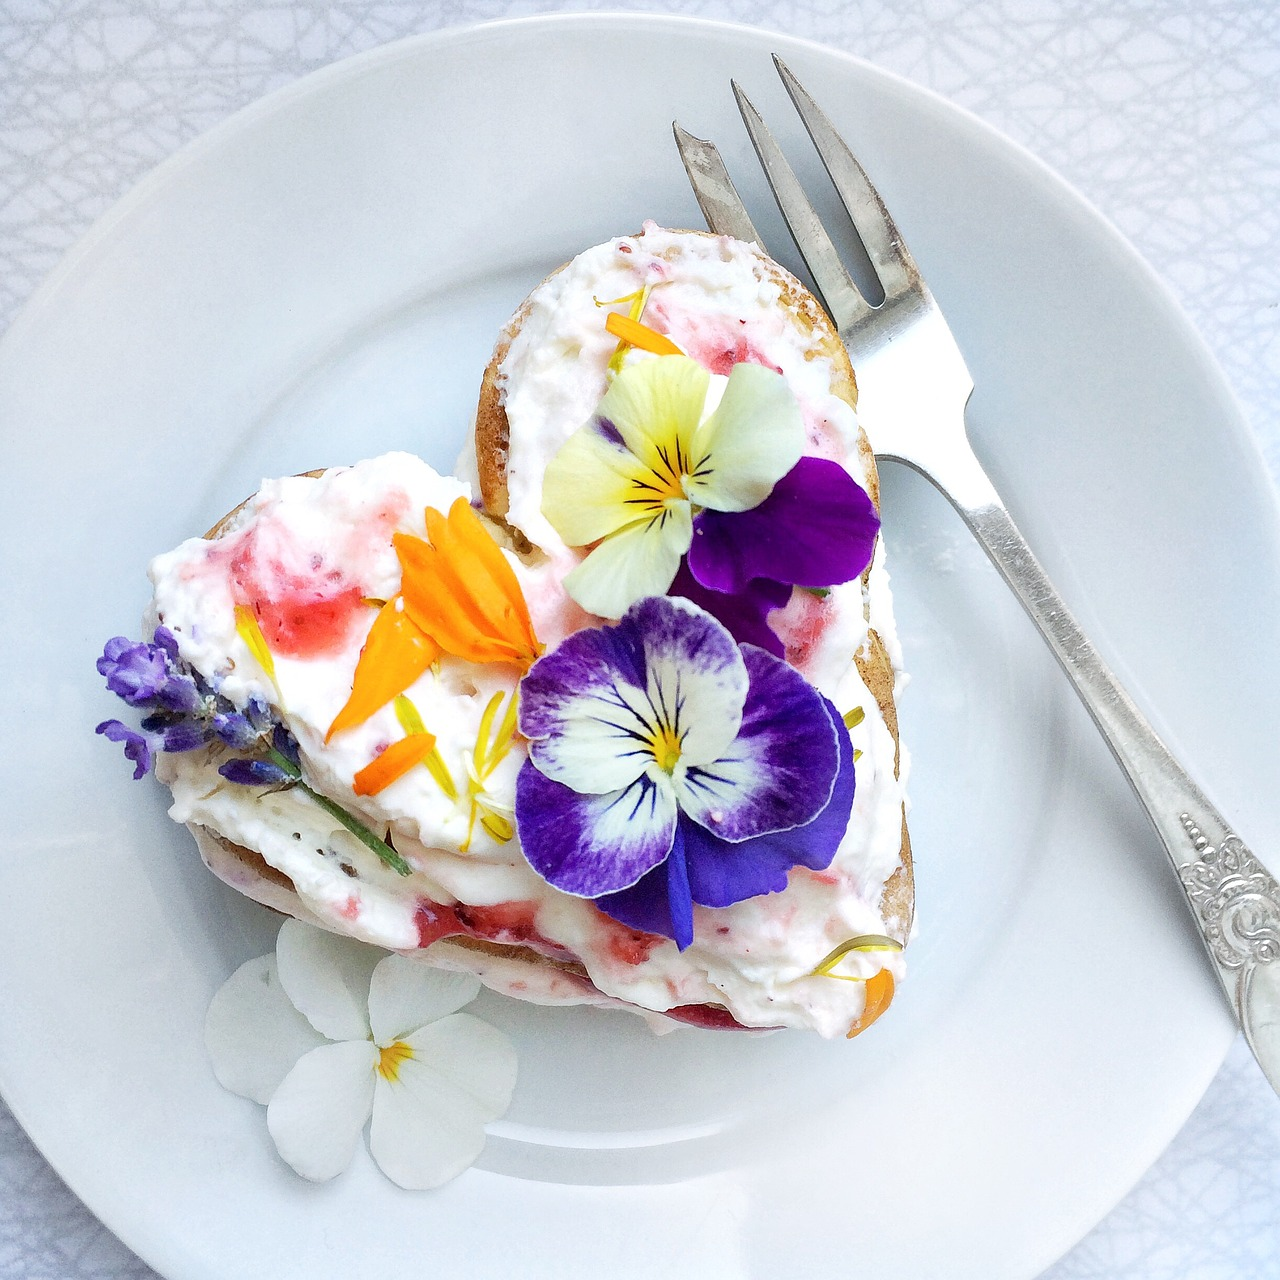 Layer jam and top with whipped cream and edible flowers for WOW factor,